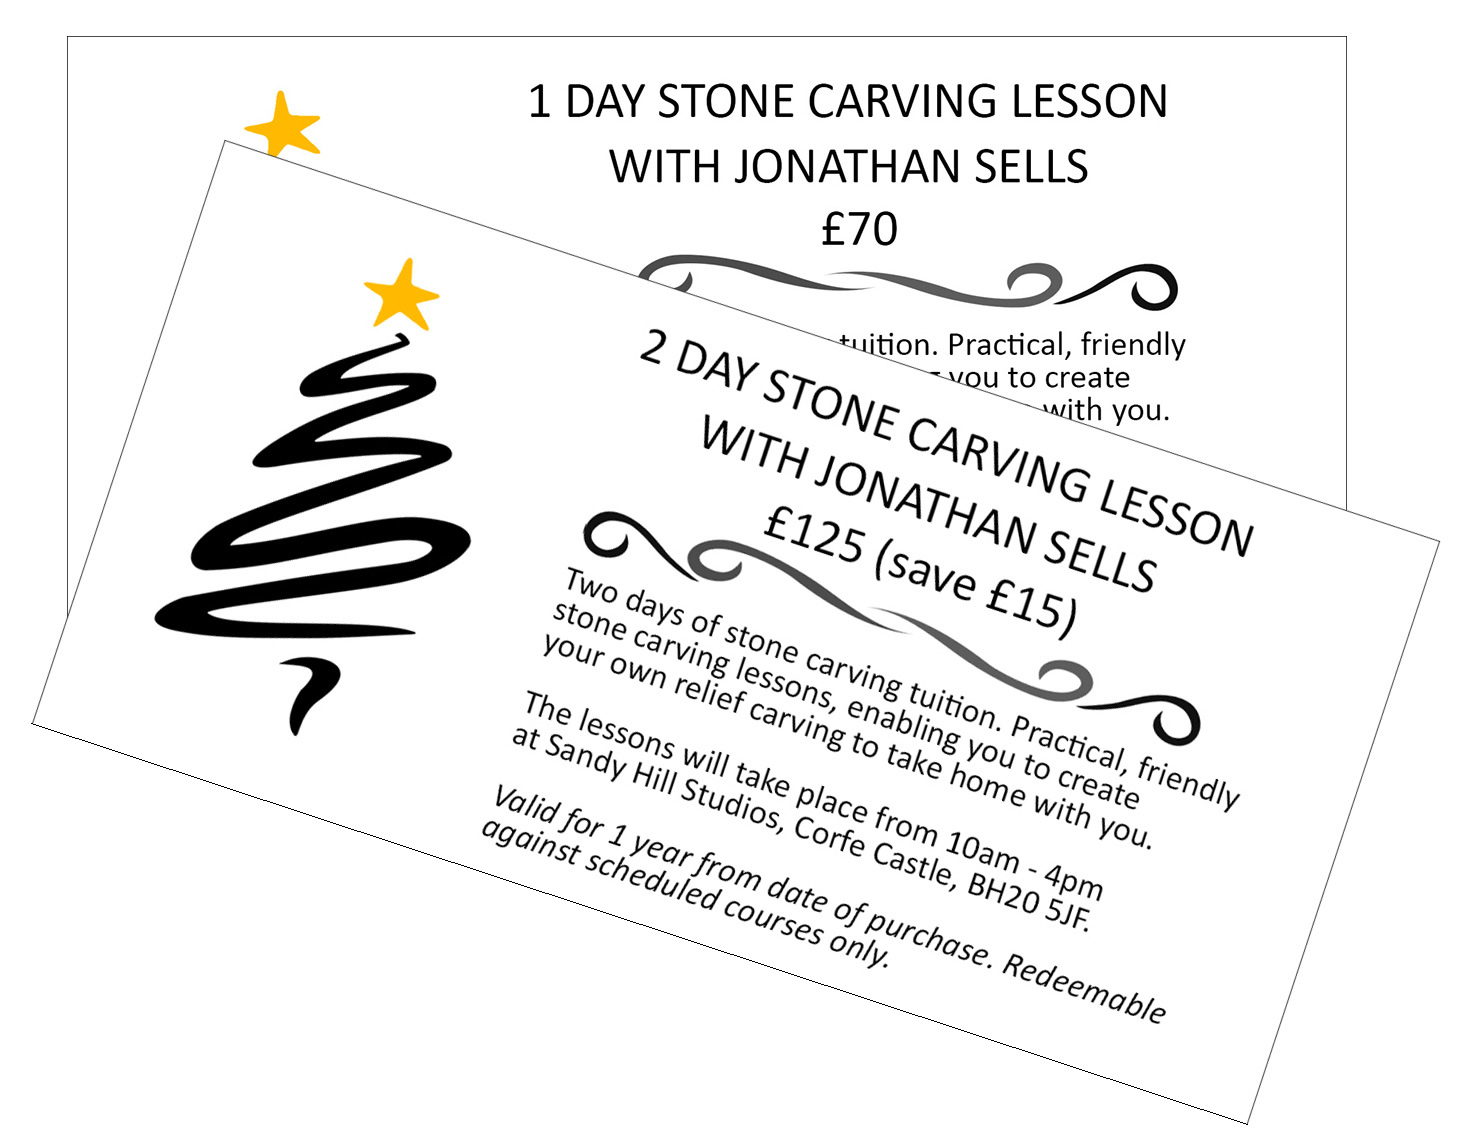 Dorset stone carving gift voucher - 1 or 2 days.